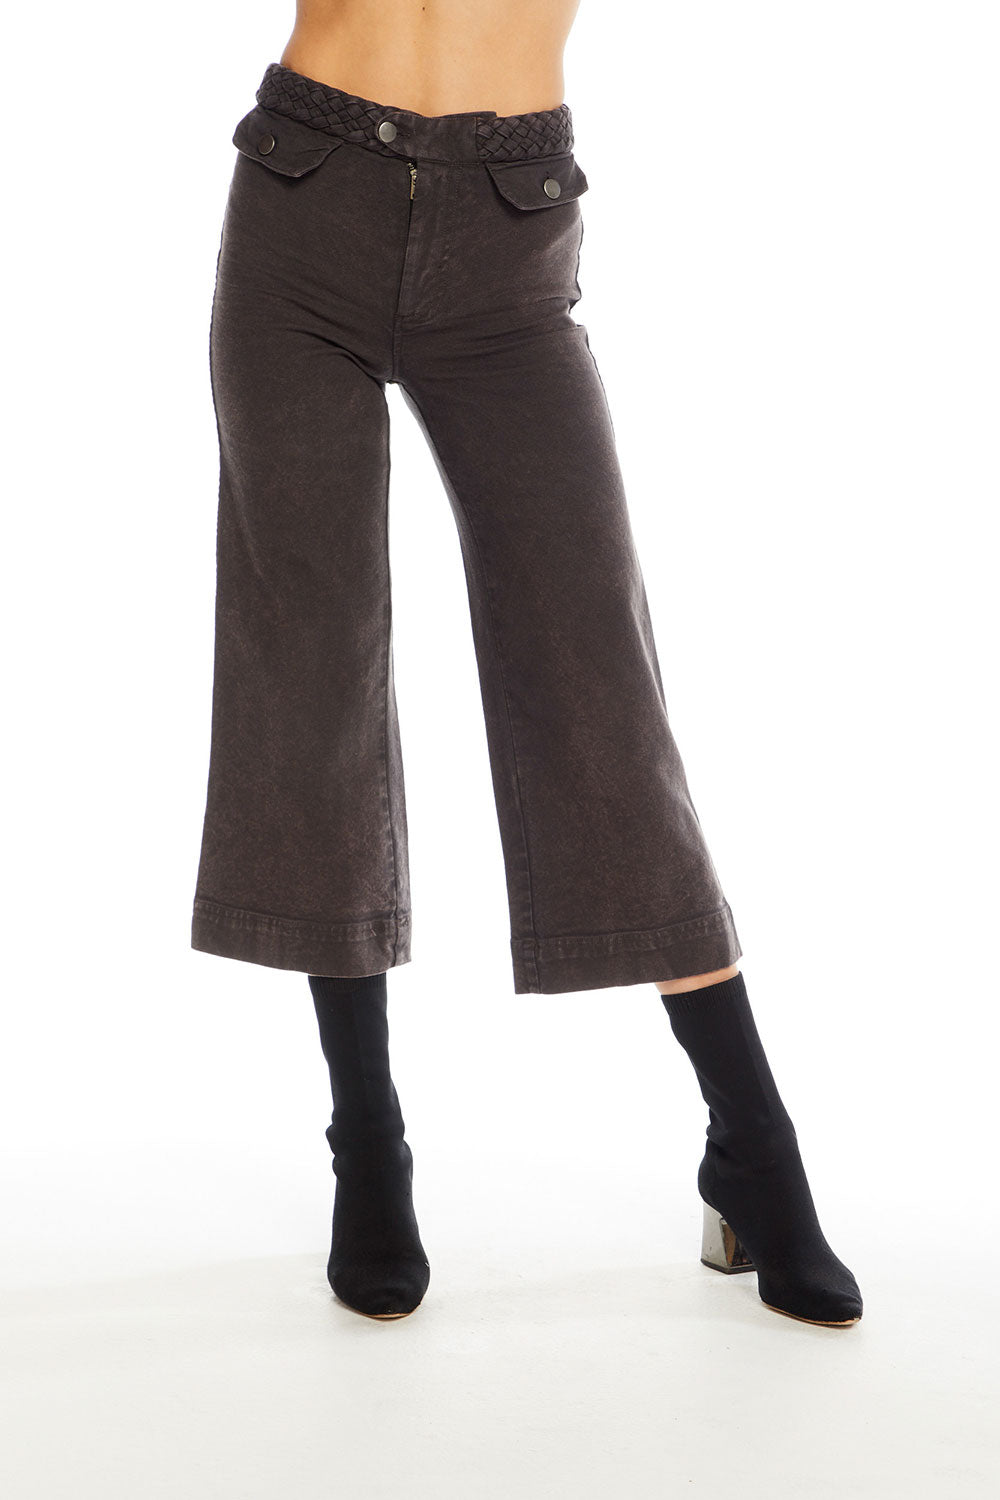 Vintage Canvas Braided High Waist Gaucho, WOMENS, chaserbrand.com,chaser clothing,chaser apparel,chaser los angeles